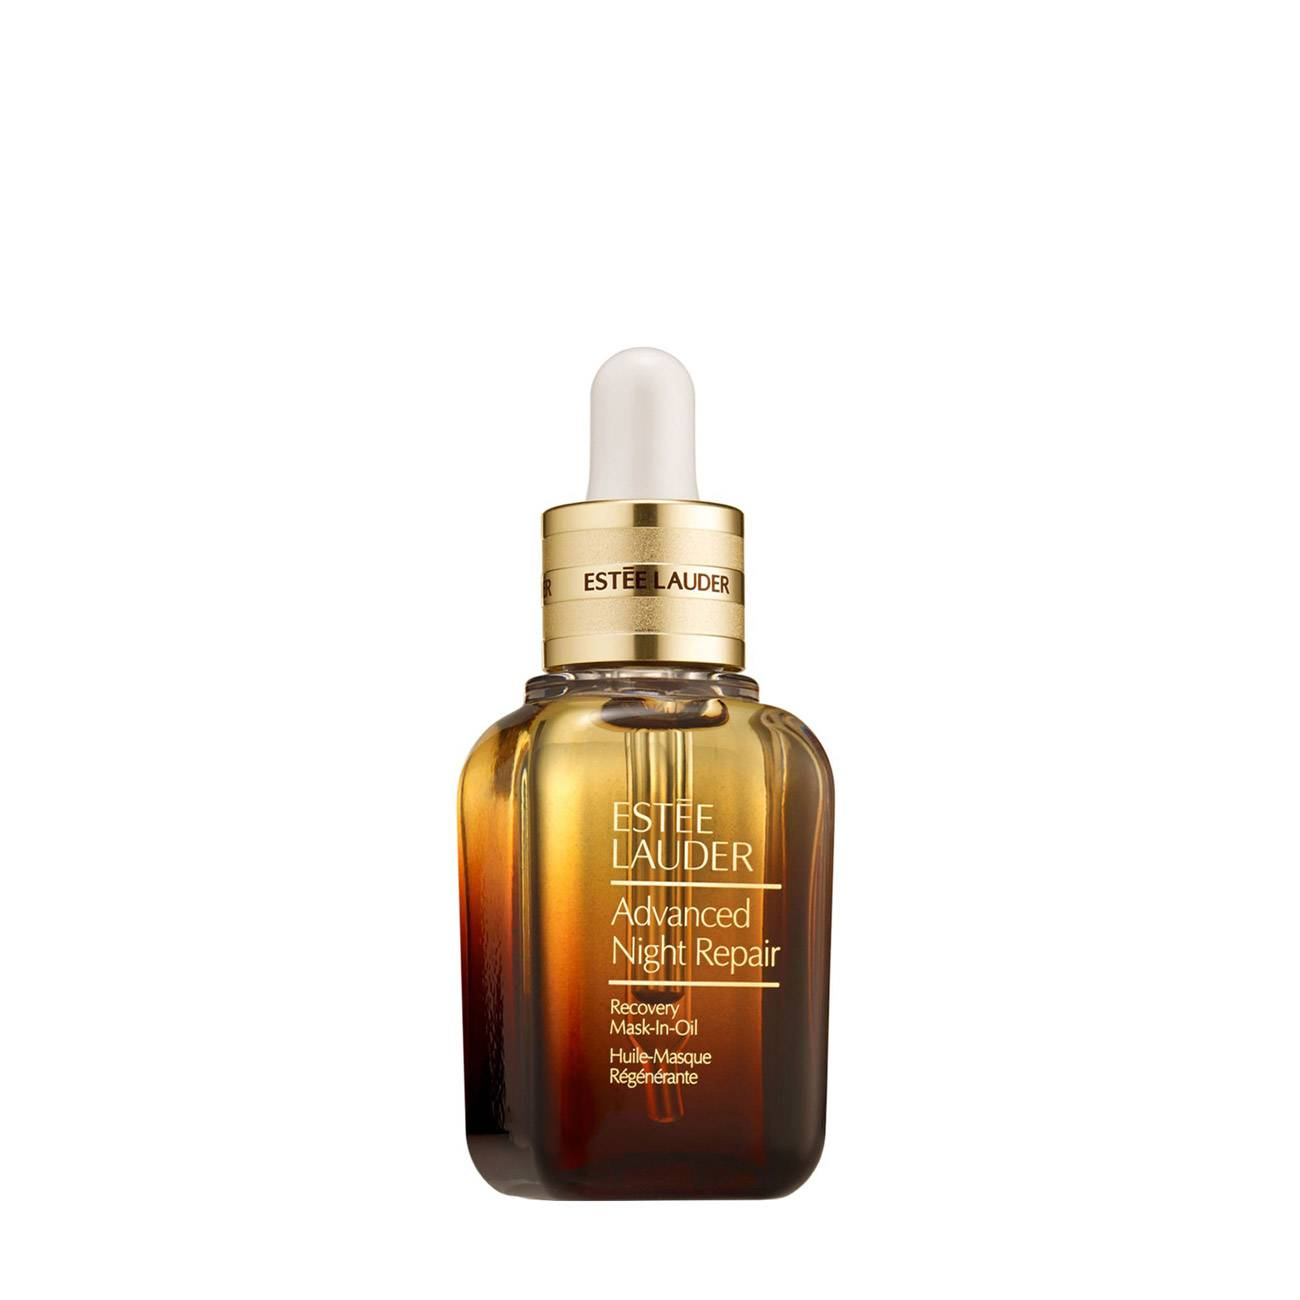 Advanced Night Repair Recovery Mask In Oil 30 Ml